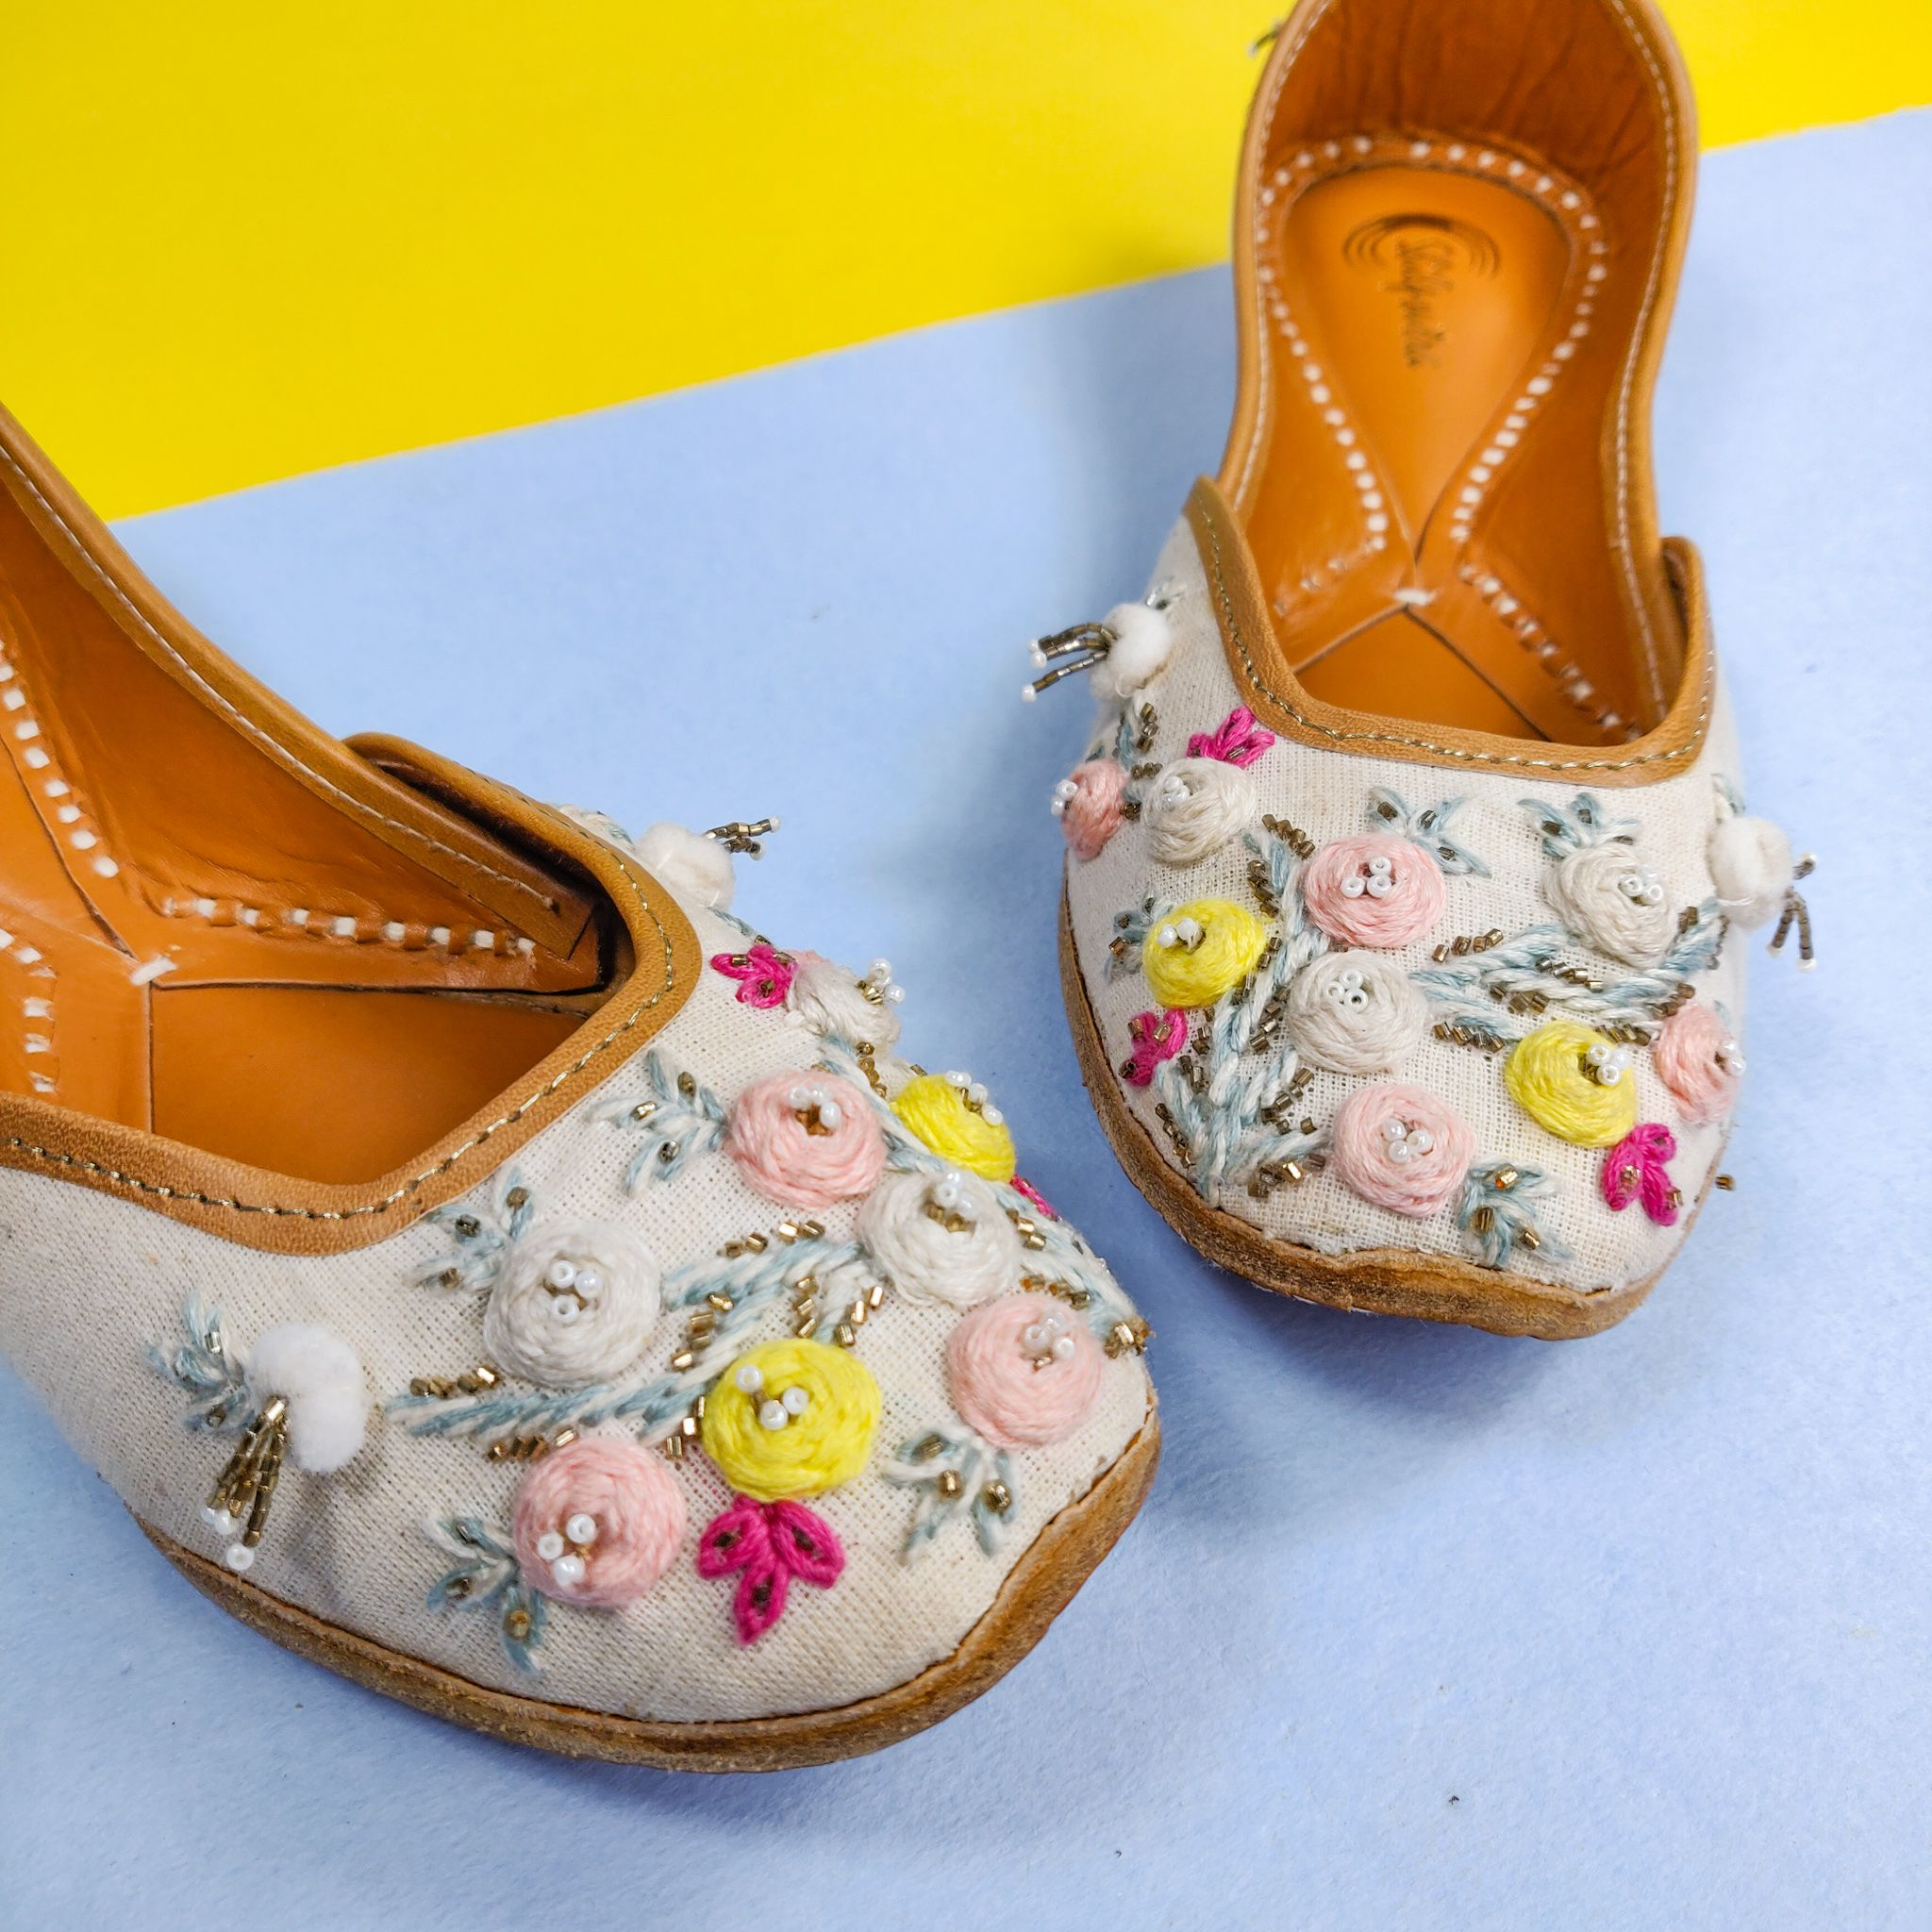 Check out these Juttis  by SHILPSUTRA on Jivaana com is part of Jutti - Shop for Love me knot online  Get Latest Collection u2713 Best Price u2713 Free Shipping u2713 Cash On Delivery u2713 7 Days Return At Jivaana